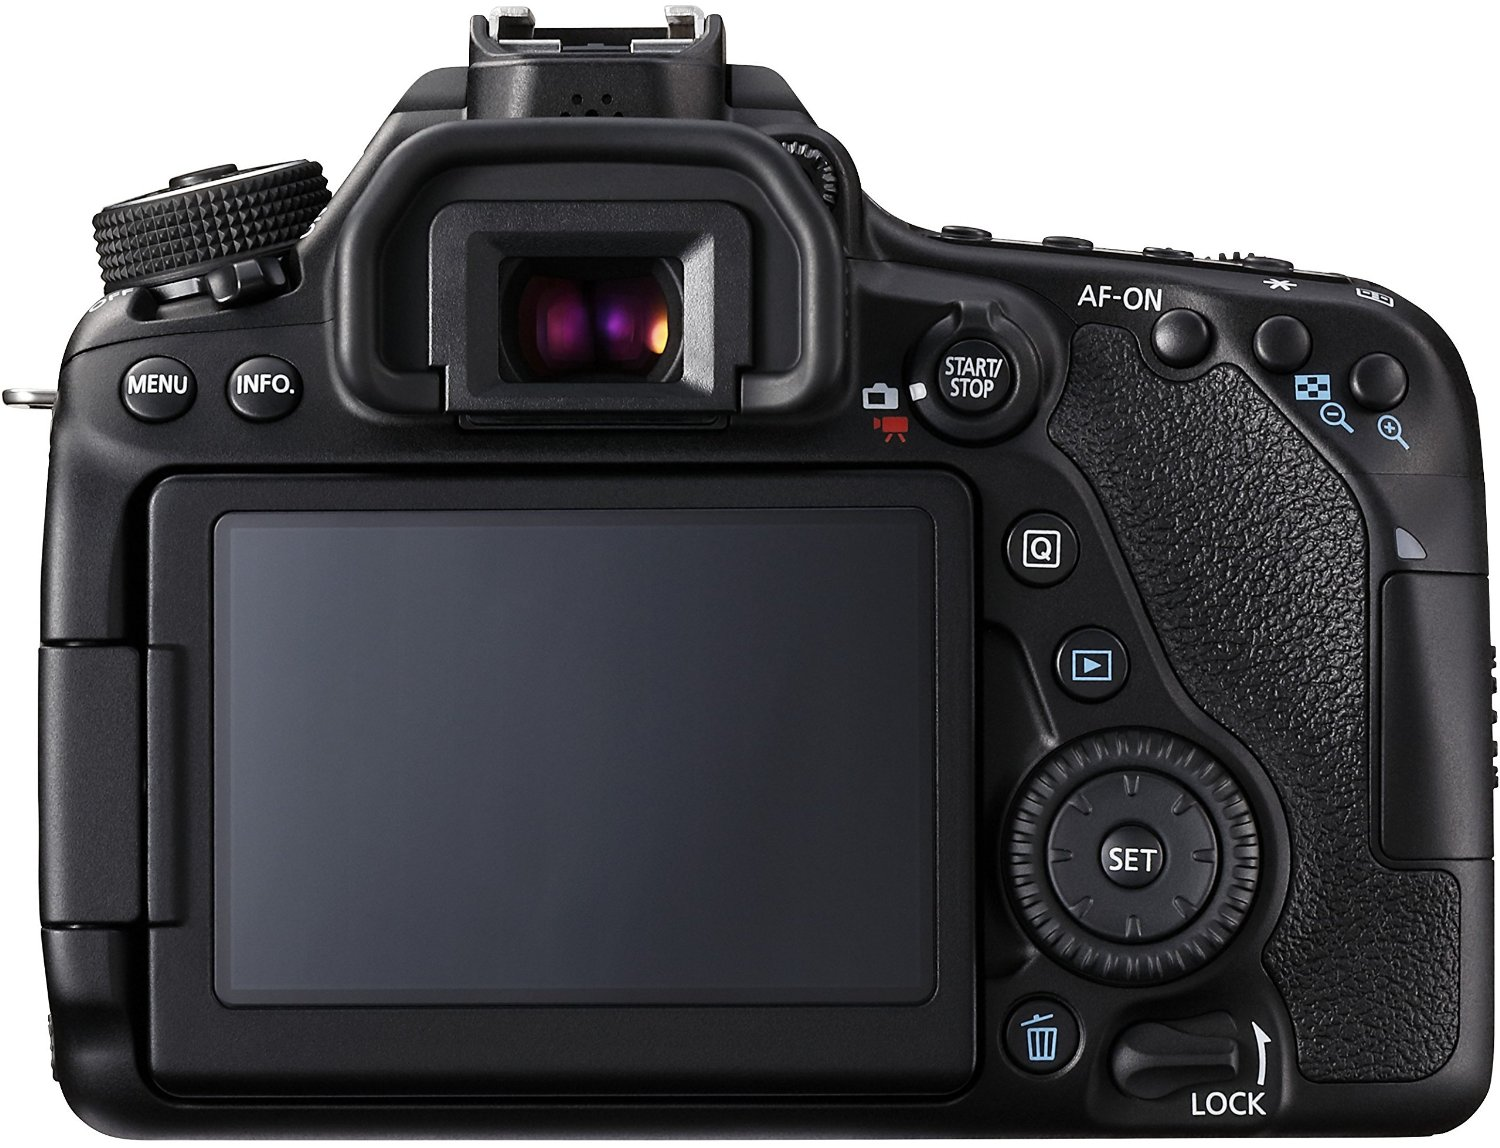 EOS 80D display and touch screen